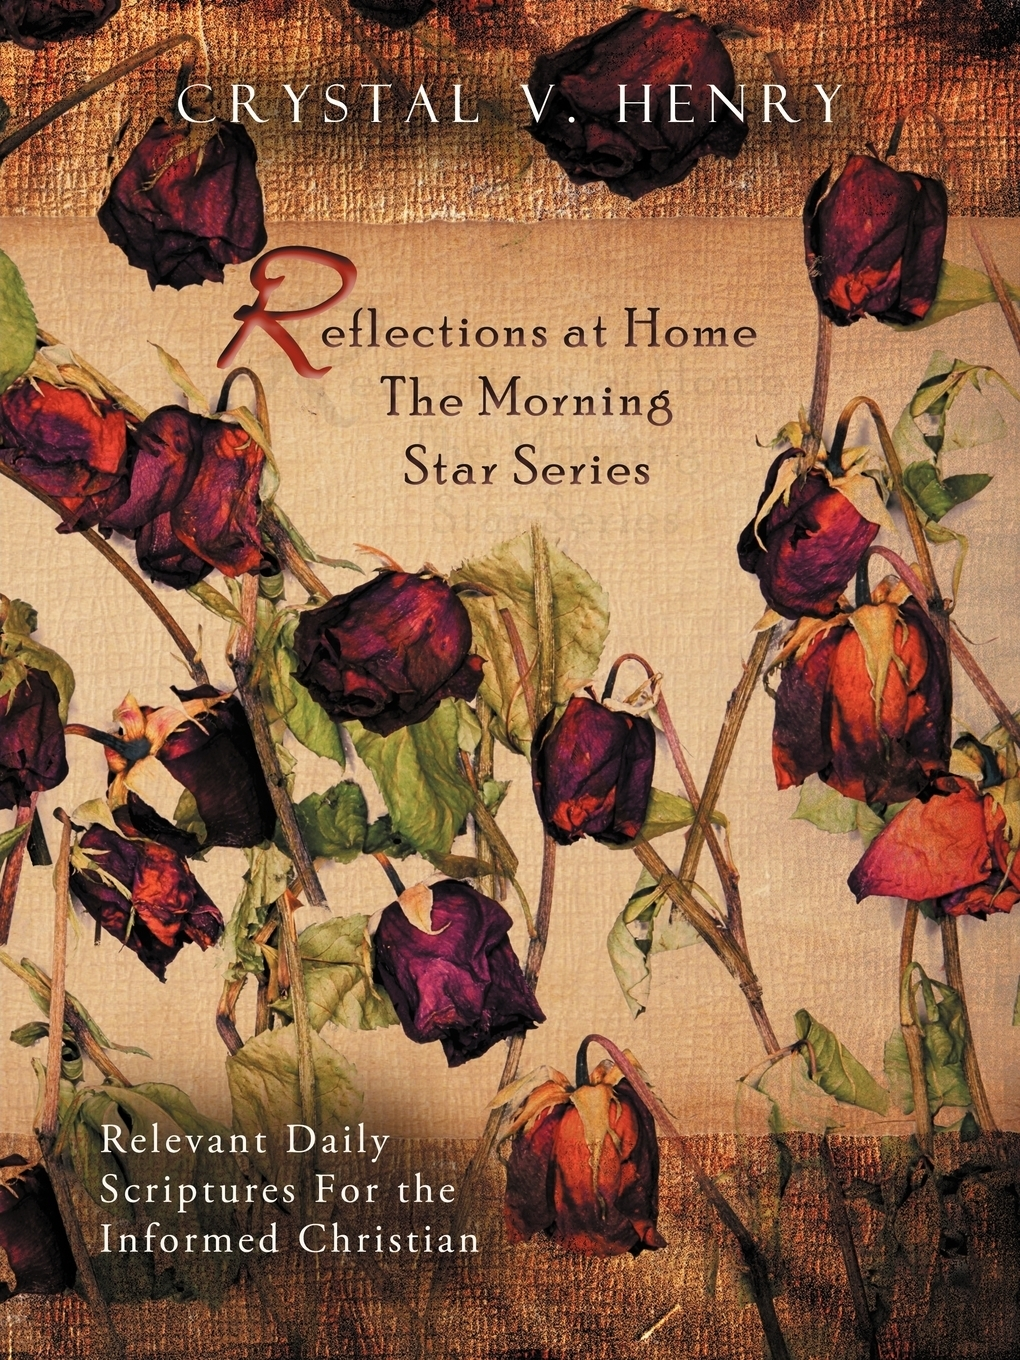 Crystal V. Henry. Reflections at Home the Morning Star Series. Relevant Daily Scriptures for the Informed Christian